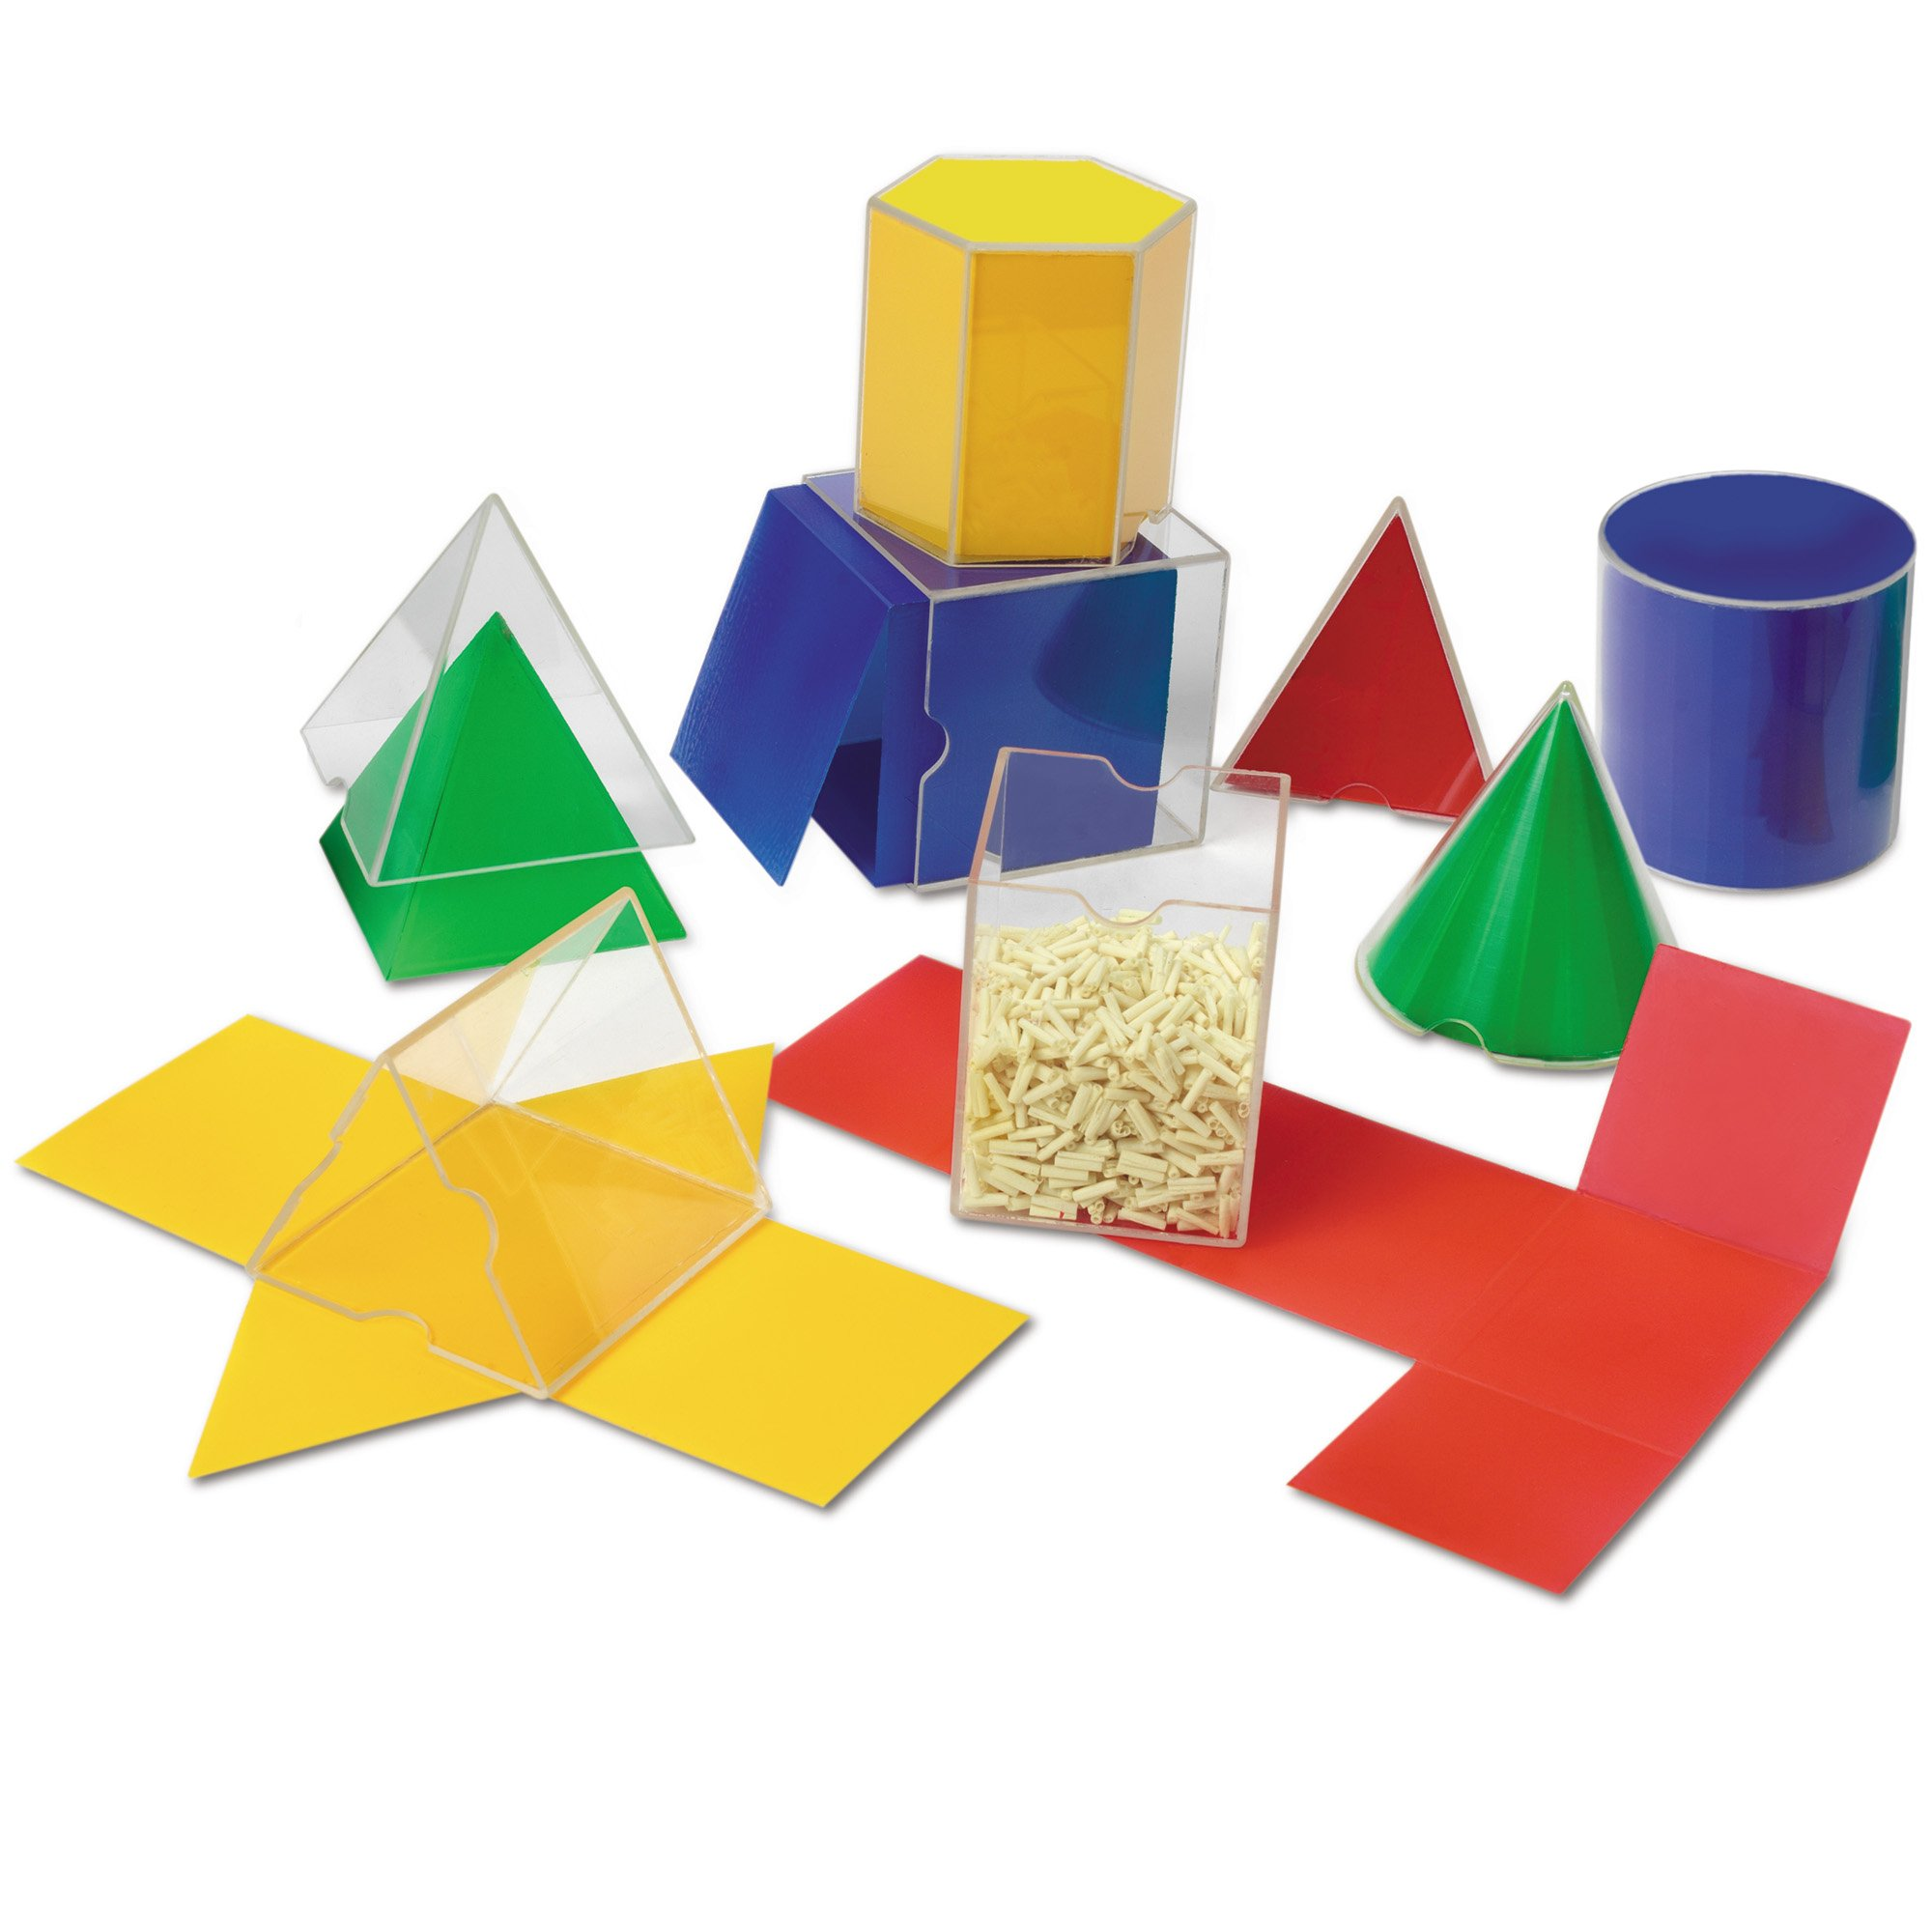 Learning Resources Folding Geometric Shapes, Geometry/Math Helper, 16-Piece Set, Ages 7+ by Learning Resources